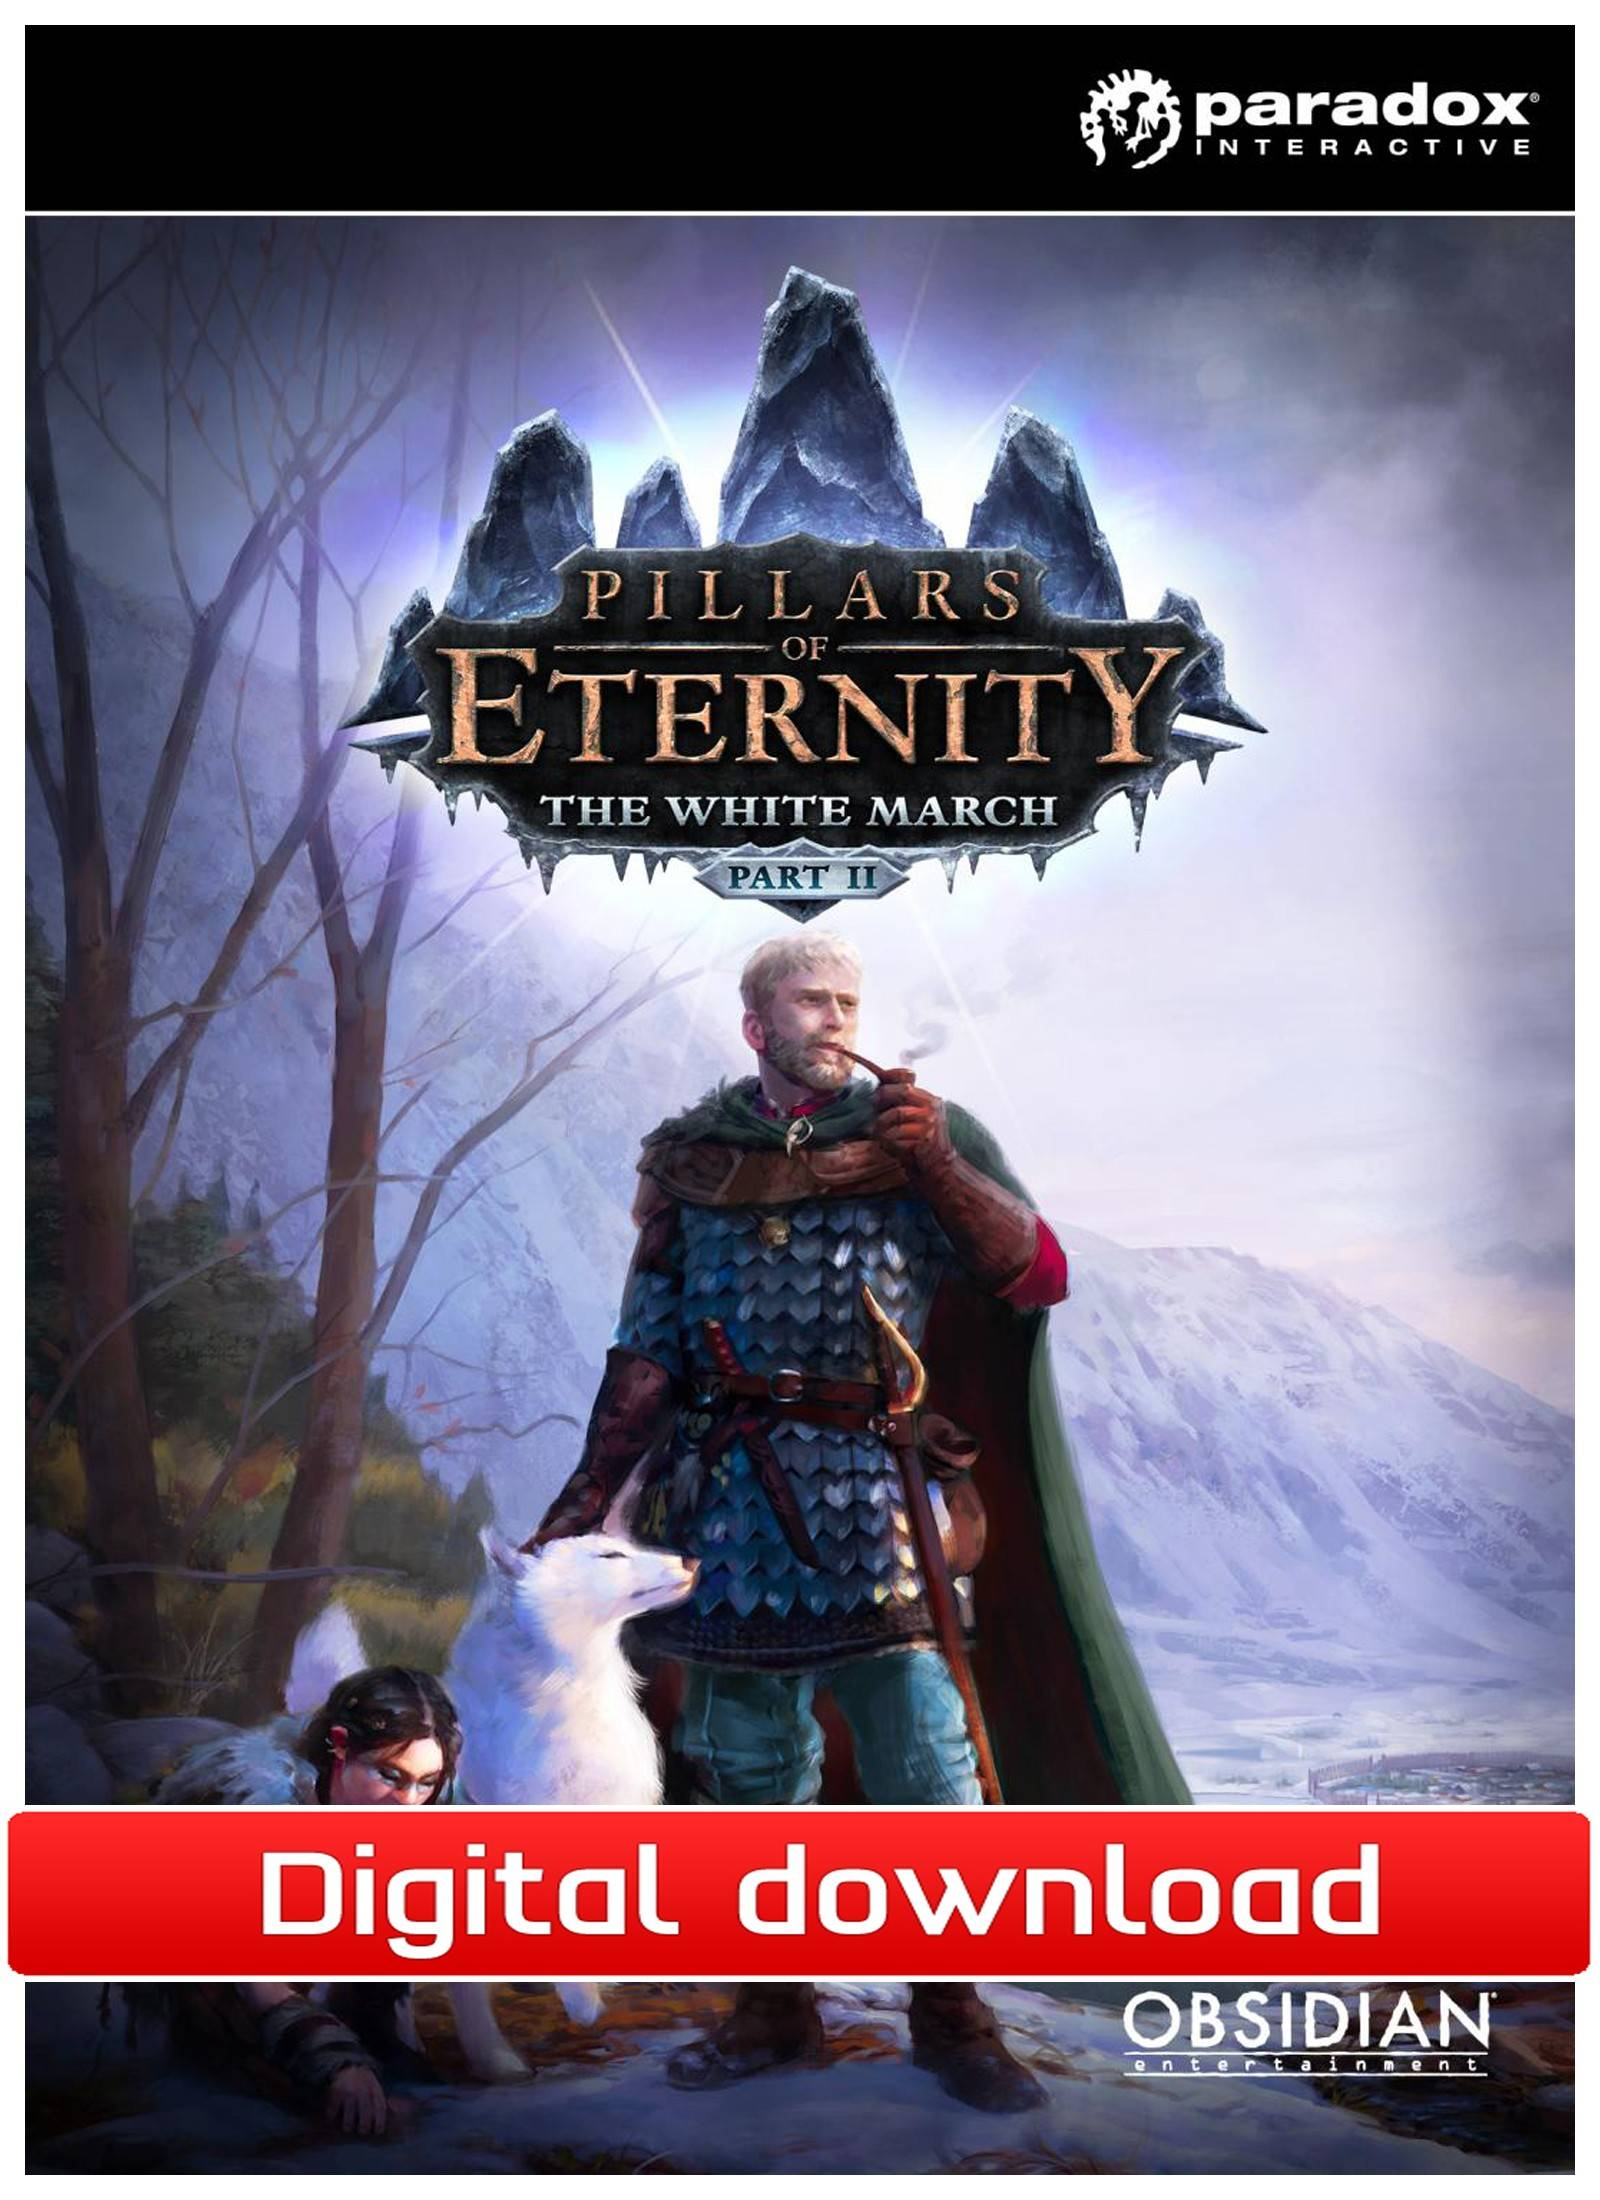 Paradox Pillars of Eternity The White March Pt. 2 (Download)